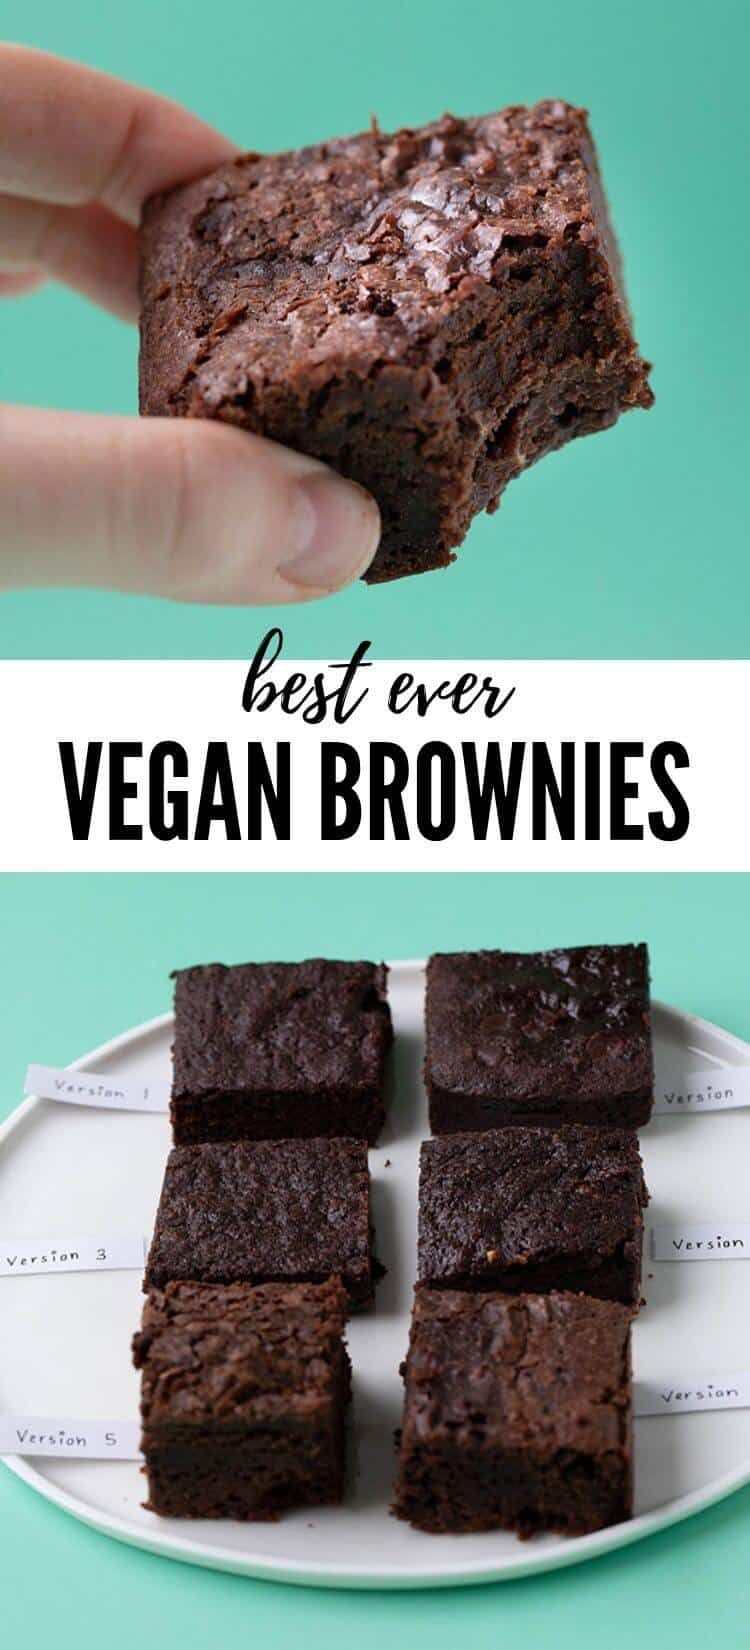 The BEST Vegan Brownies I've ever had! They're fudgy, full of chocolate and completely dairy free,